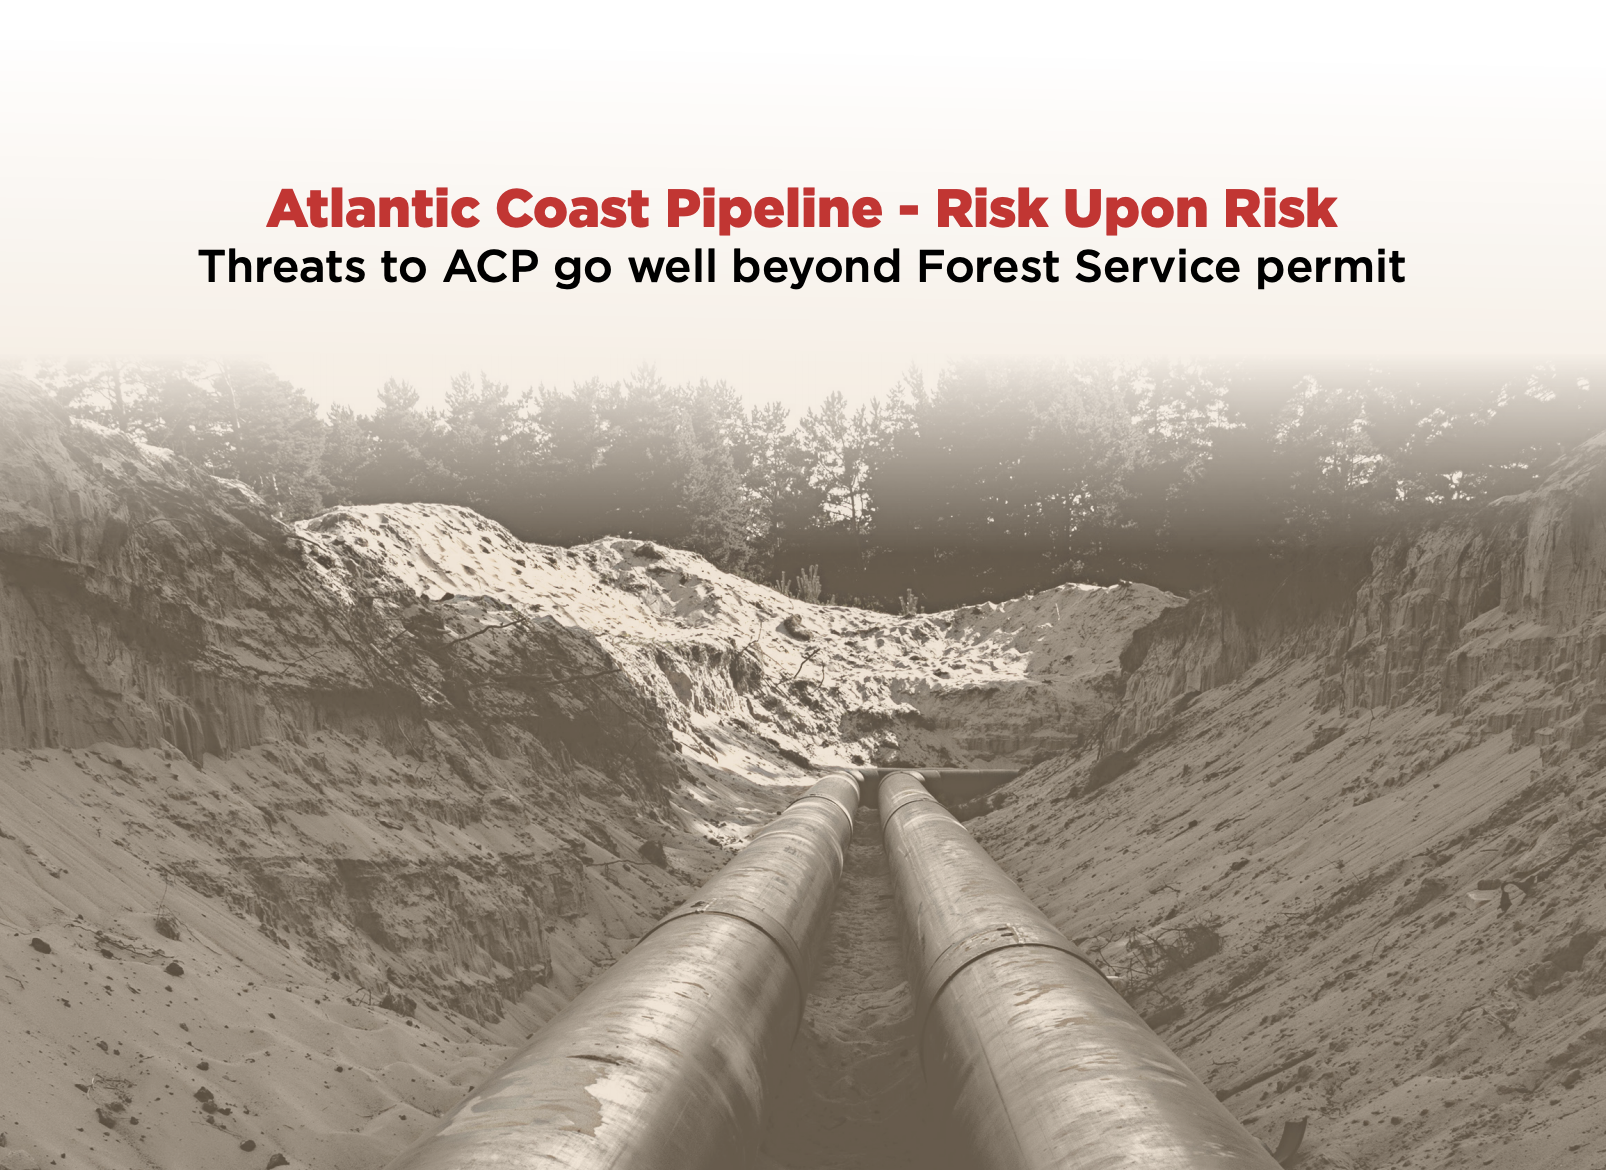 Briefing: Atlantic Coast Pipeline – Risk Upon Risk